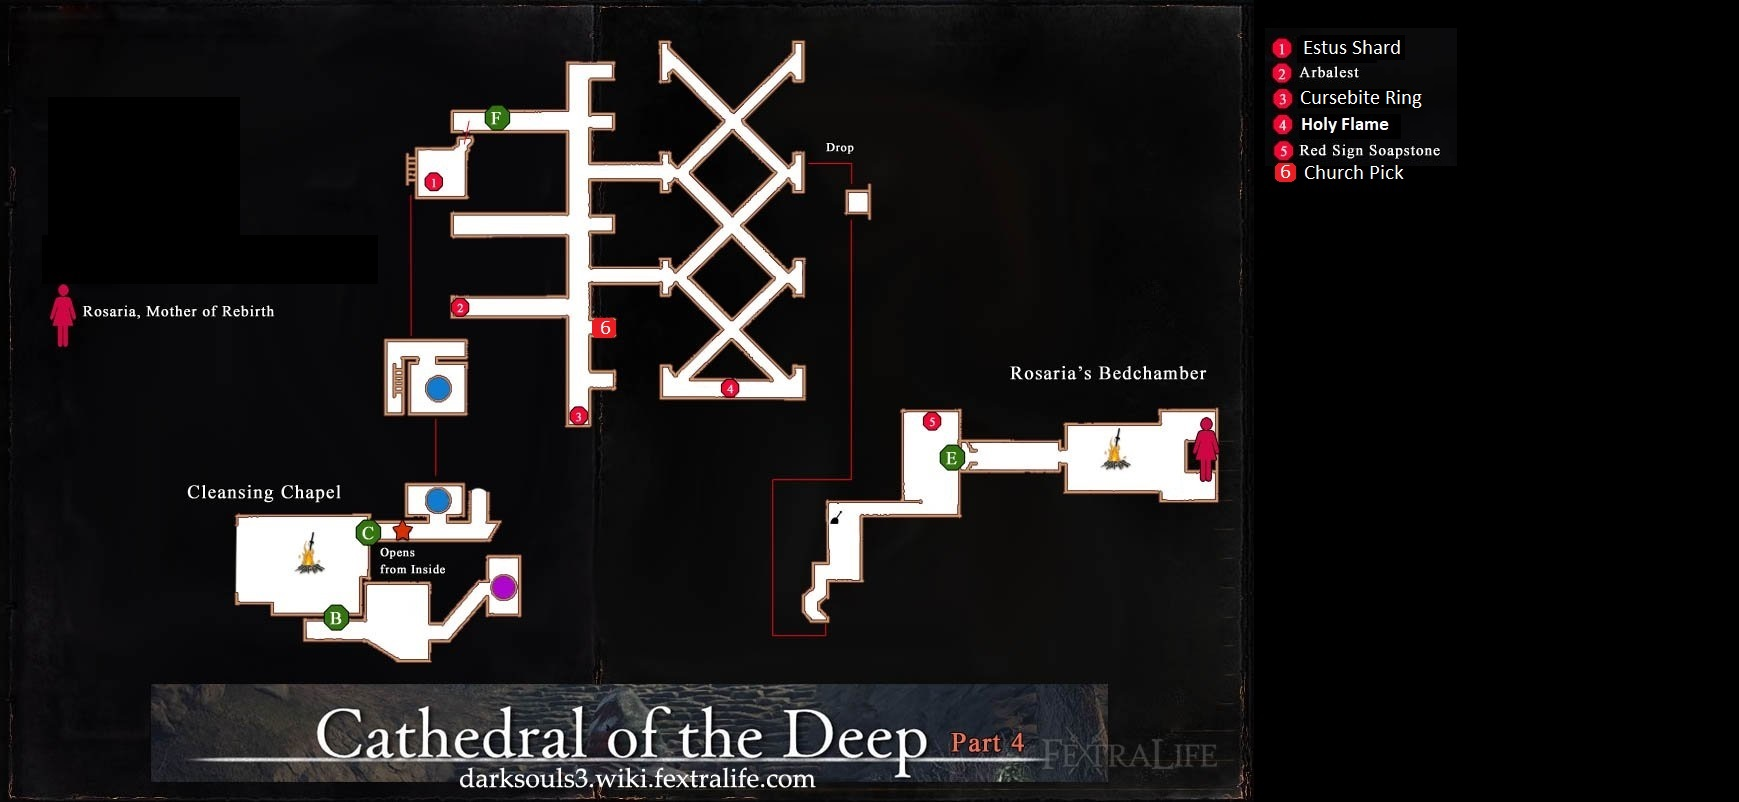 cathedral_of_the_deep_map4.jpg